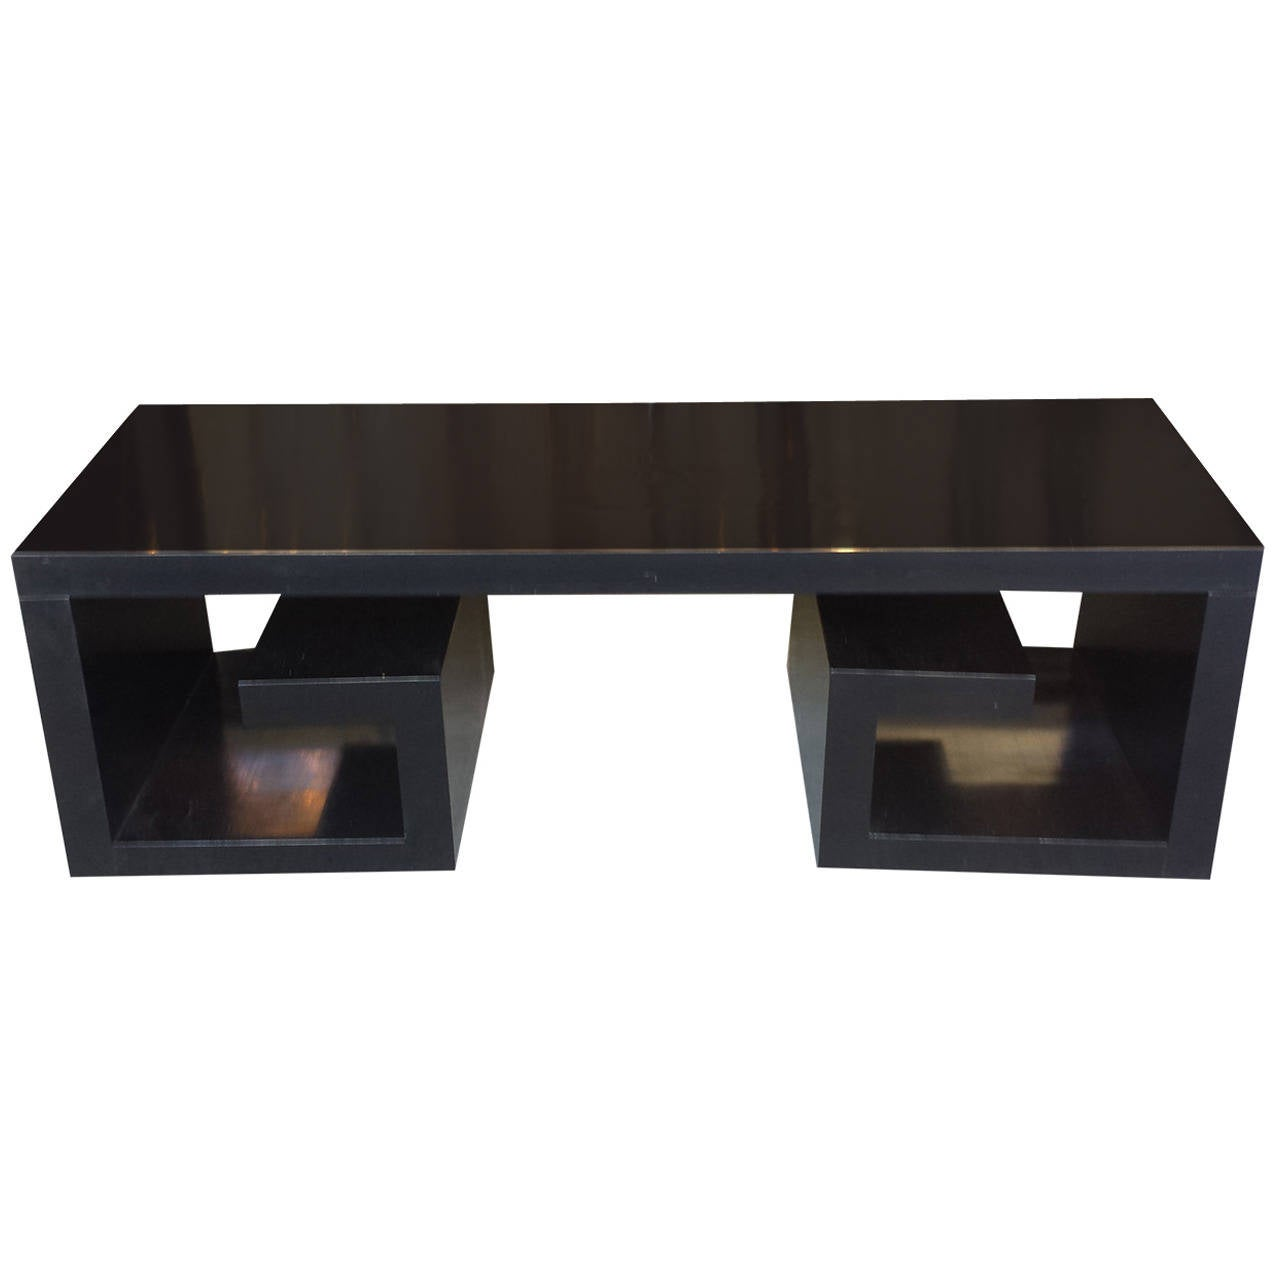 Sculptural ebonized coffee table or bench with greek key pattern sculptural ebonized coffee table or bench with greek key pattern base 1 geotapseo Gallery